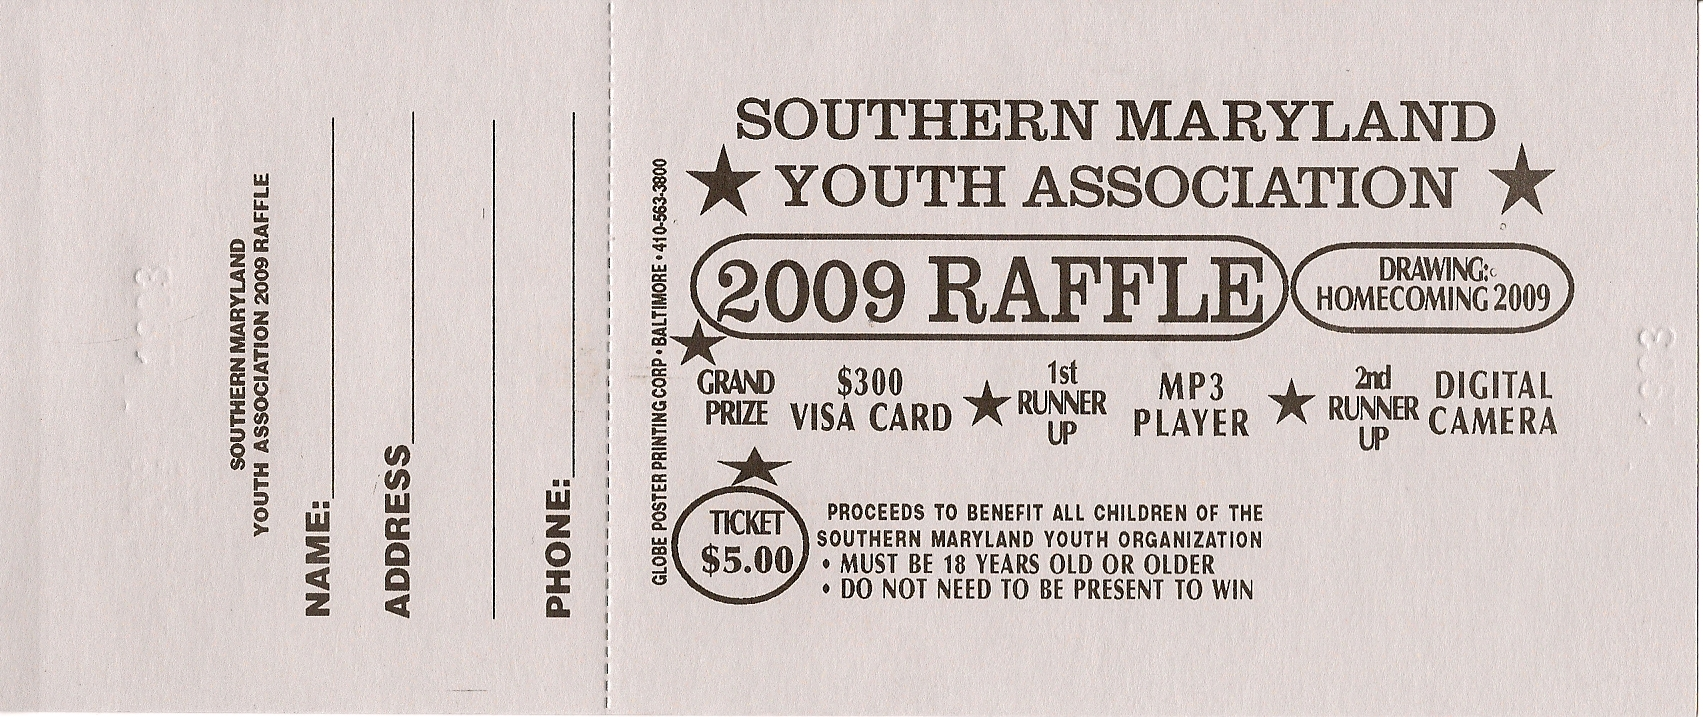 Raffle Ticket $5.00 raffle tickets